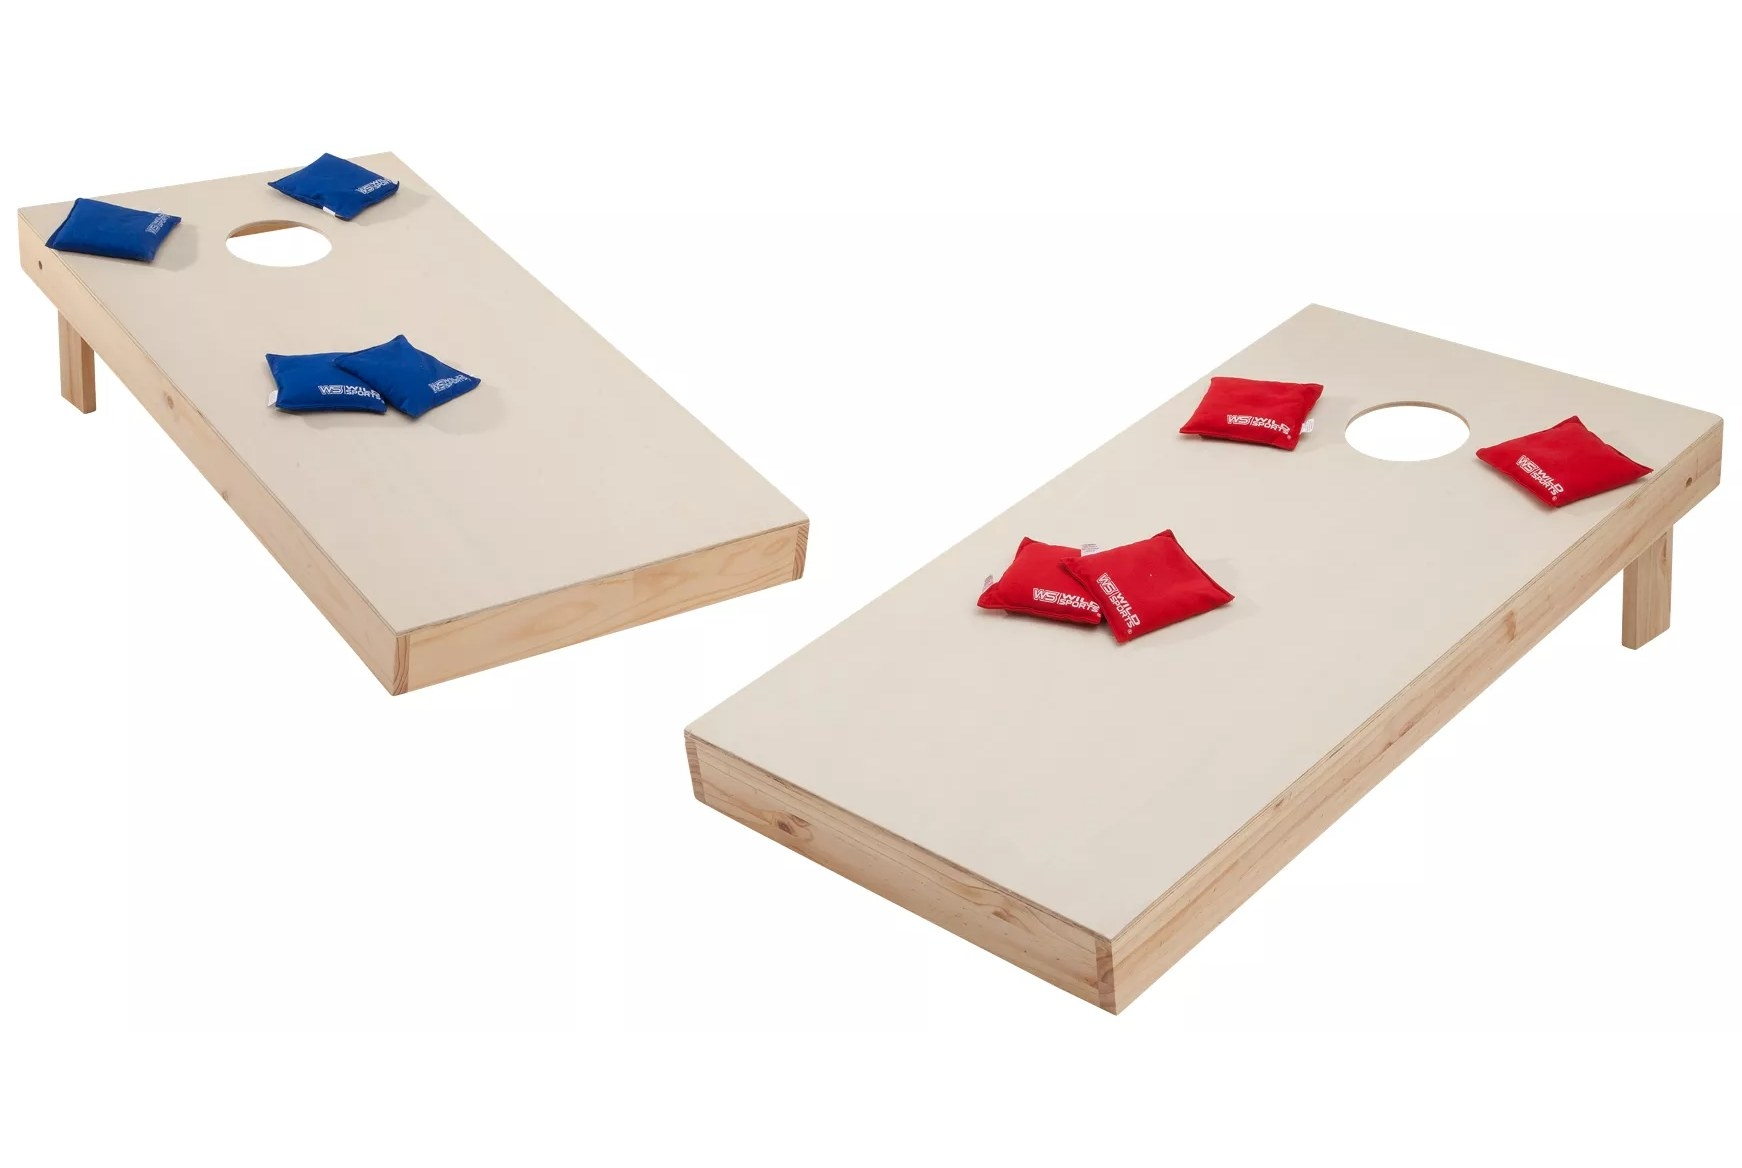 The set with two bases and a eight tossing bags